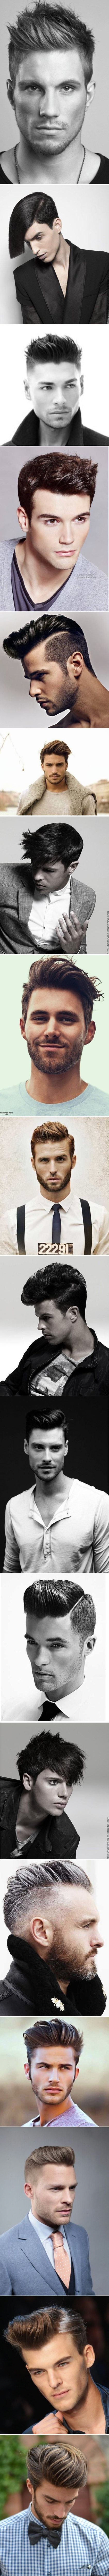 Best 25 College haircuts ideas on Pinterest